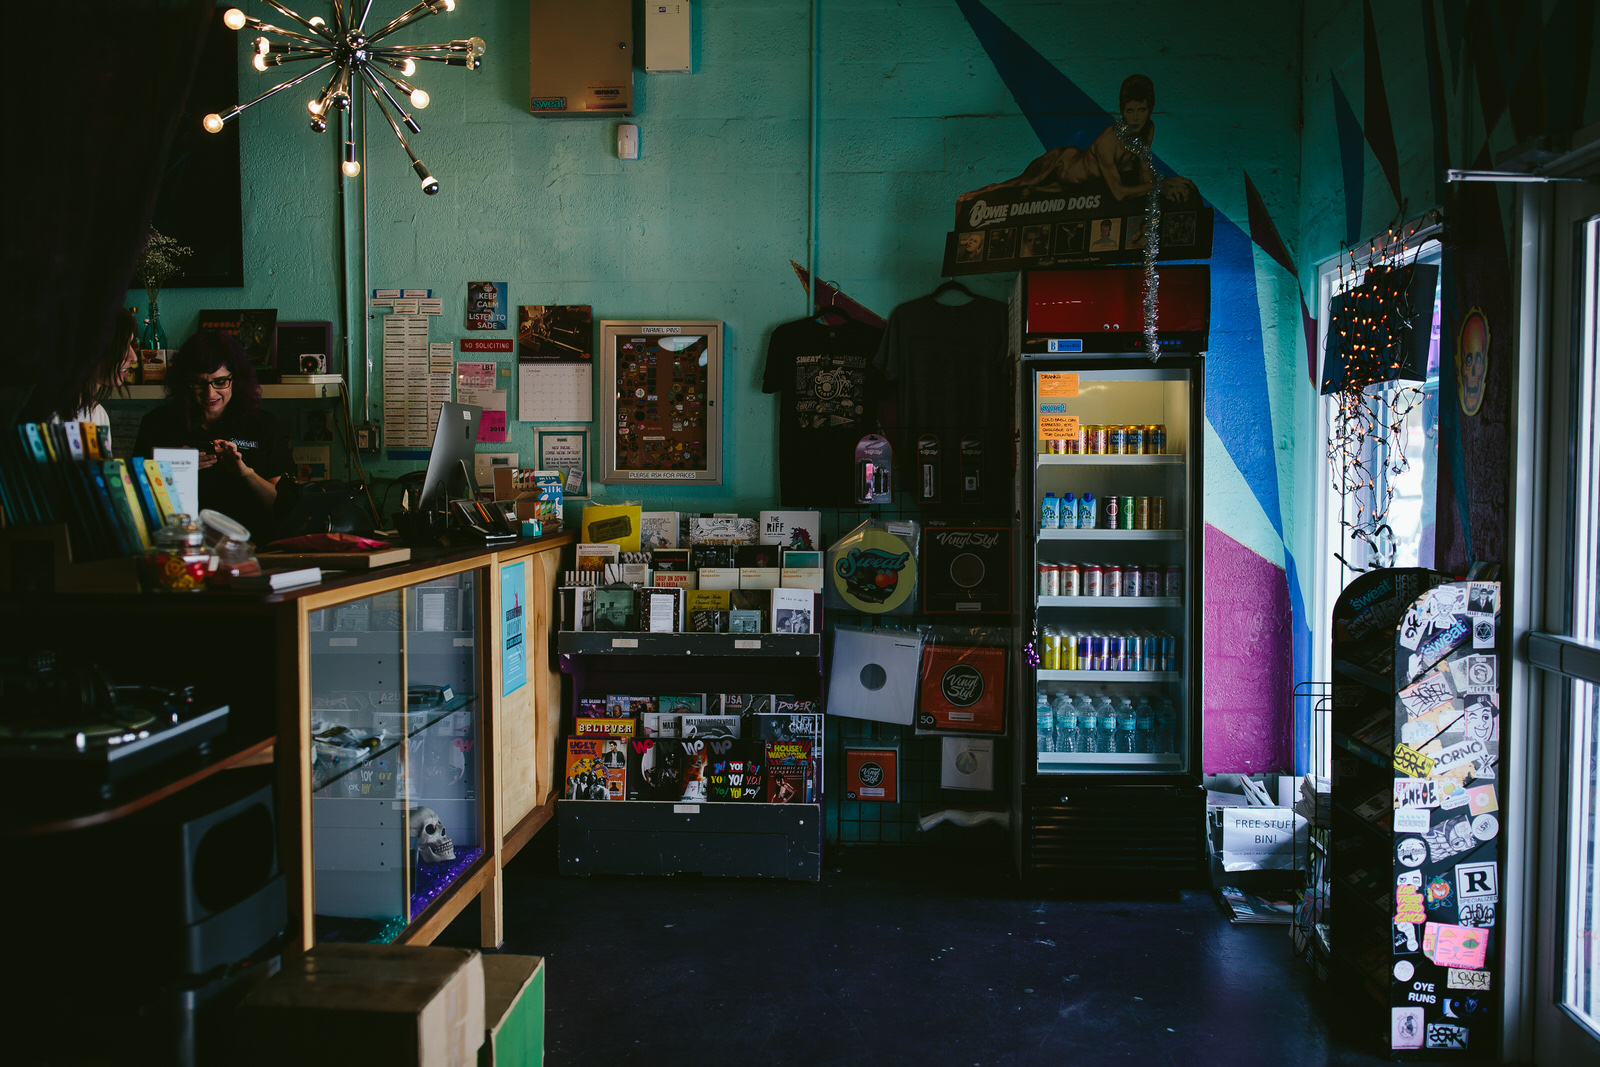 sweat records in miami is an artistic abode nestled in the heart of little haiti